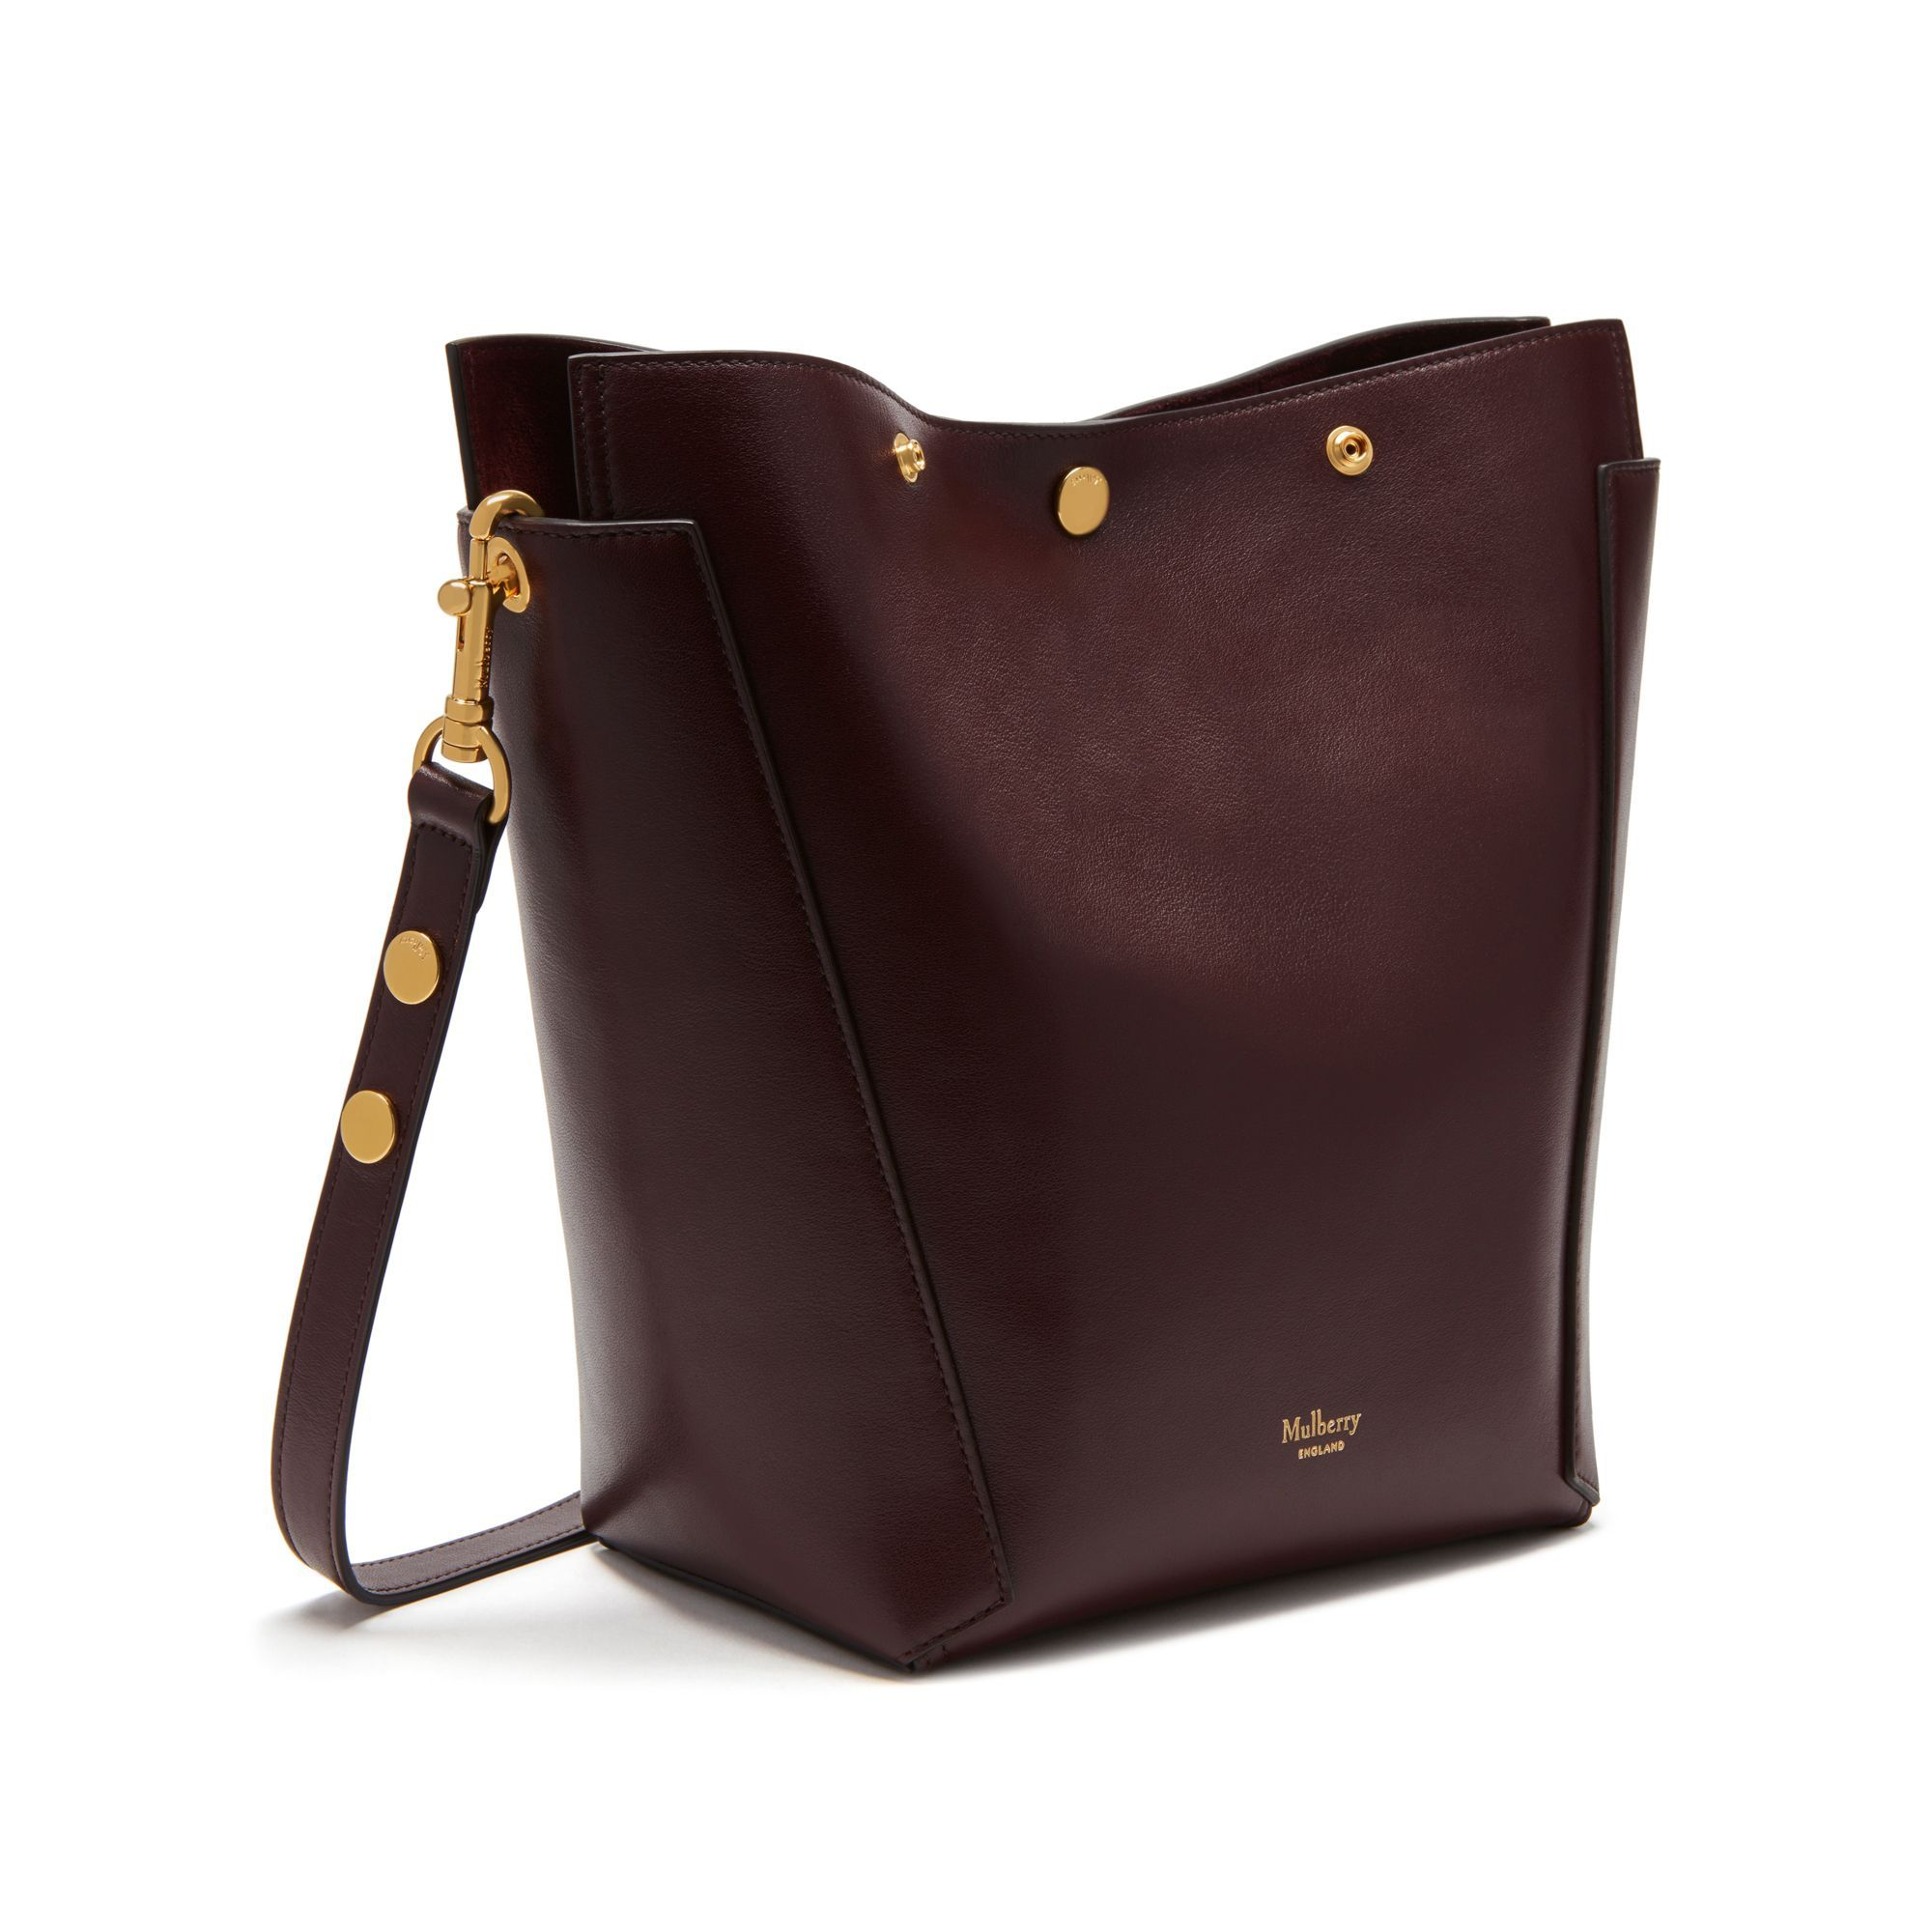 Shop the Small Camden in Oxblood Smooth Calf Leather at Mulberry.com.  Introducing the Small Camden. First introduced last season de91d2b4a1535